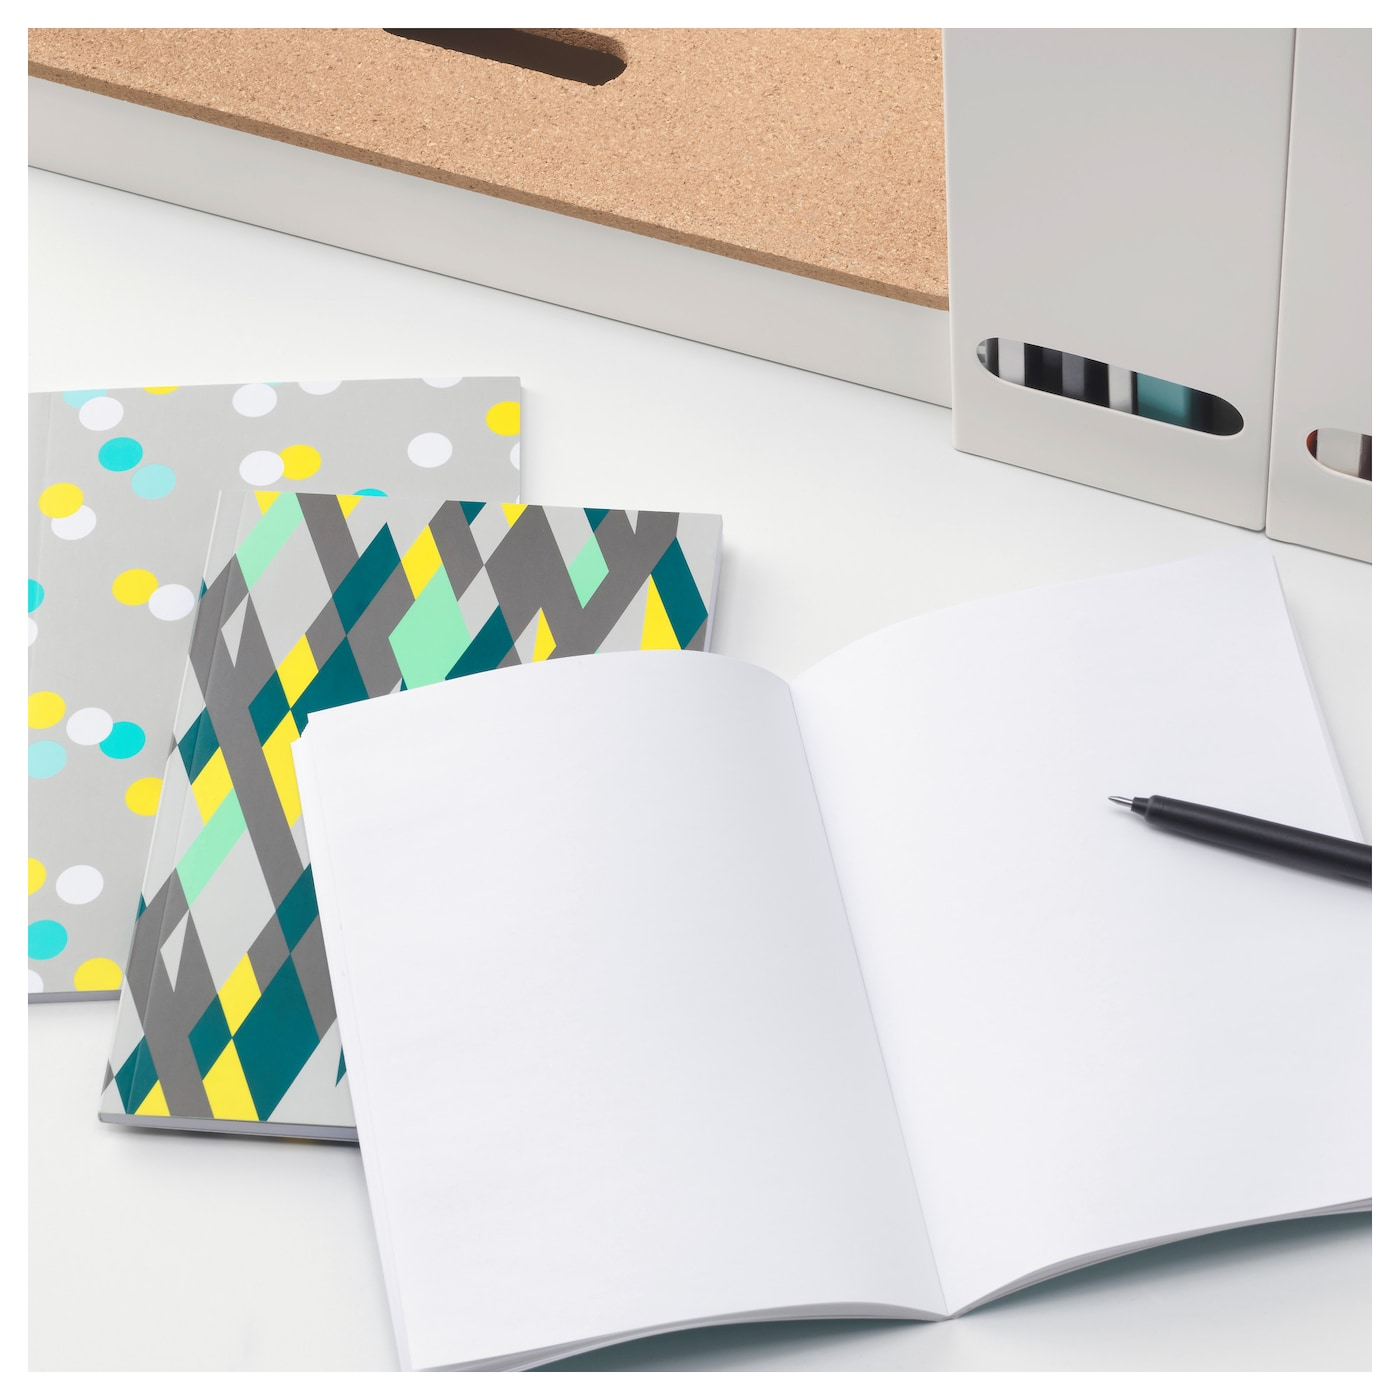 IKEA UPPFATTA note-book